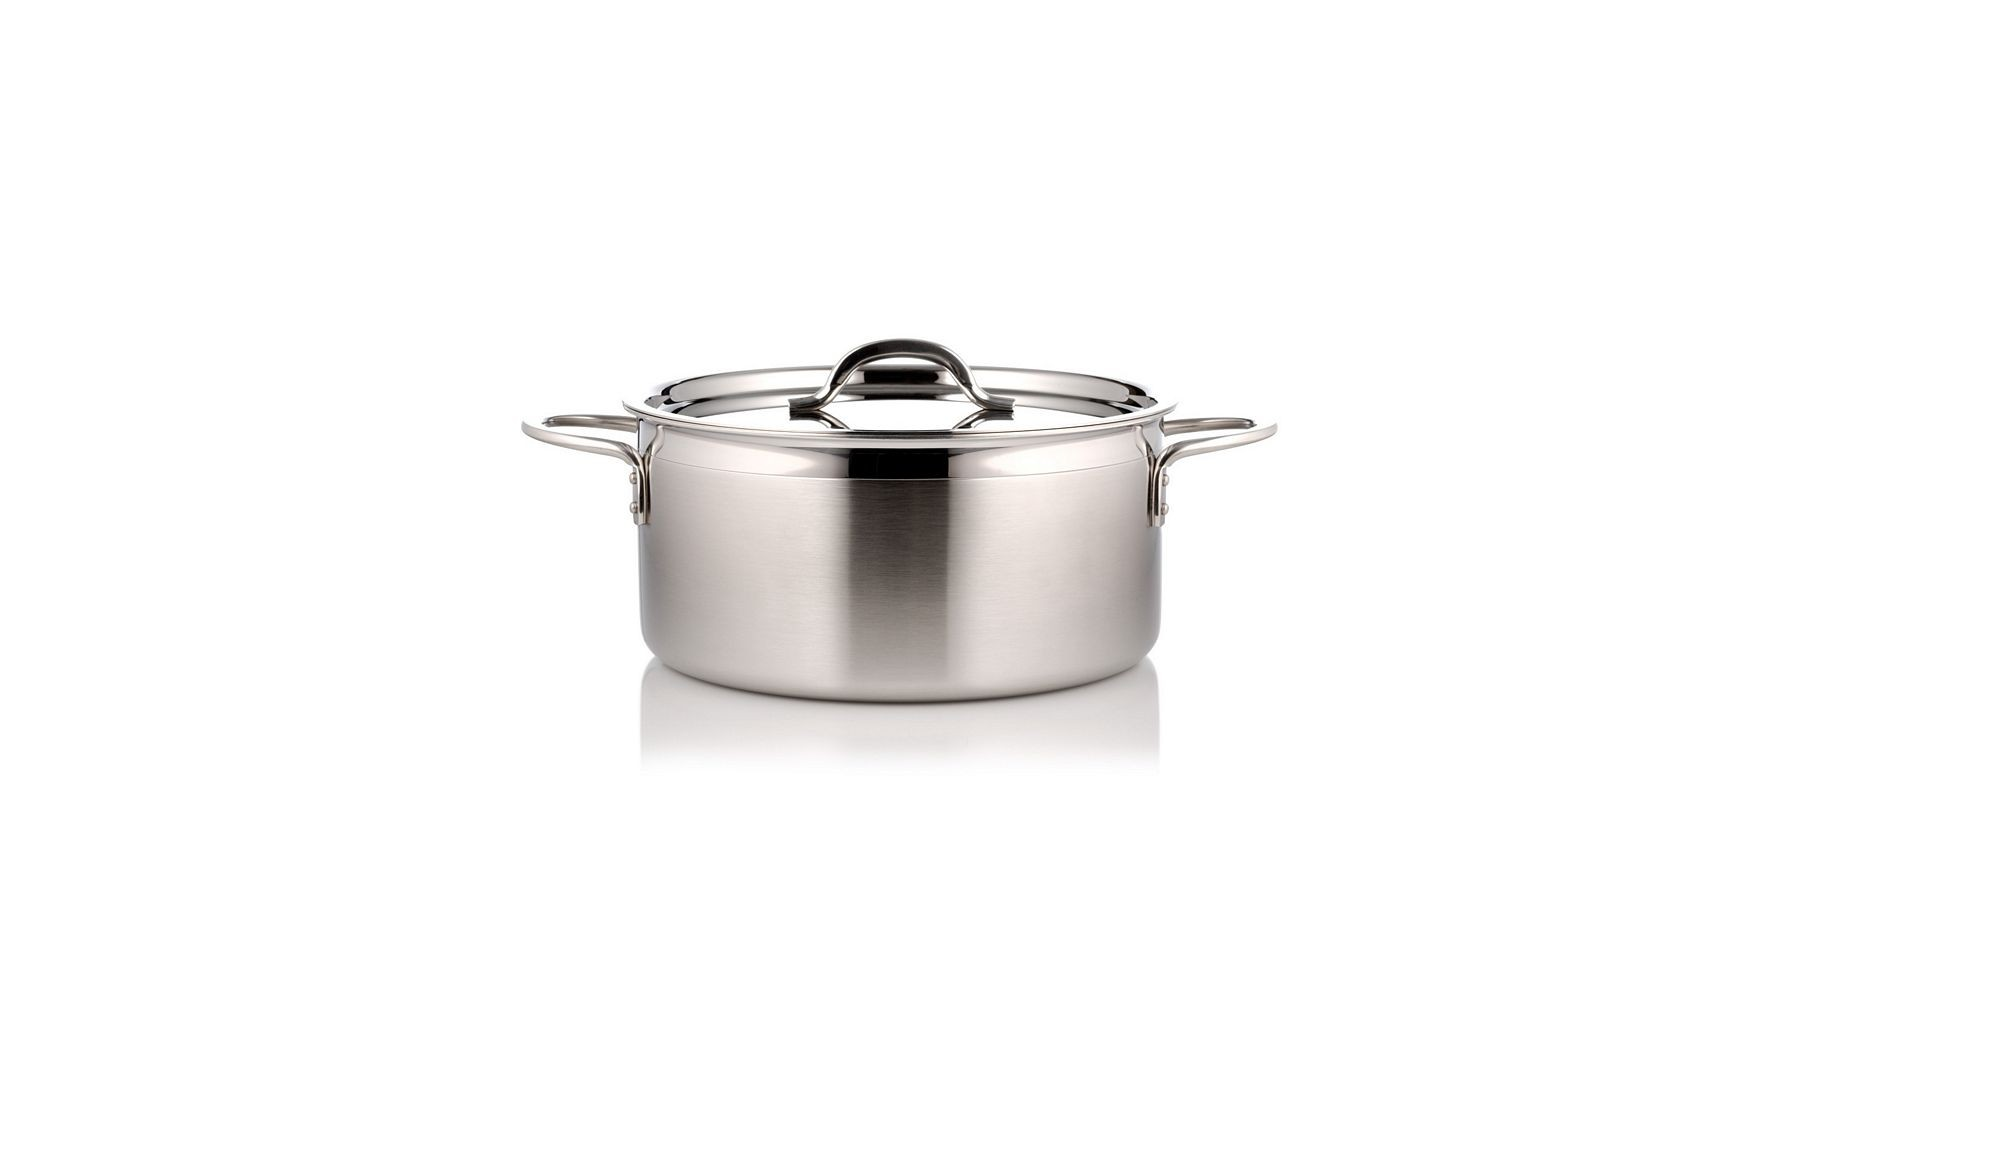 Bon Chef 60299-2ToneSS Country French Two Tone Stainless Steel Pot with Cover, 1 Qt. 22 oz.